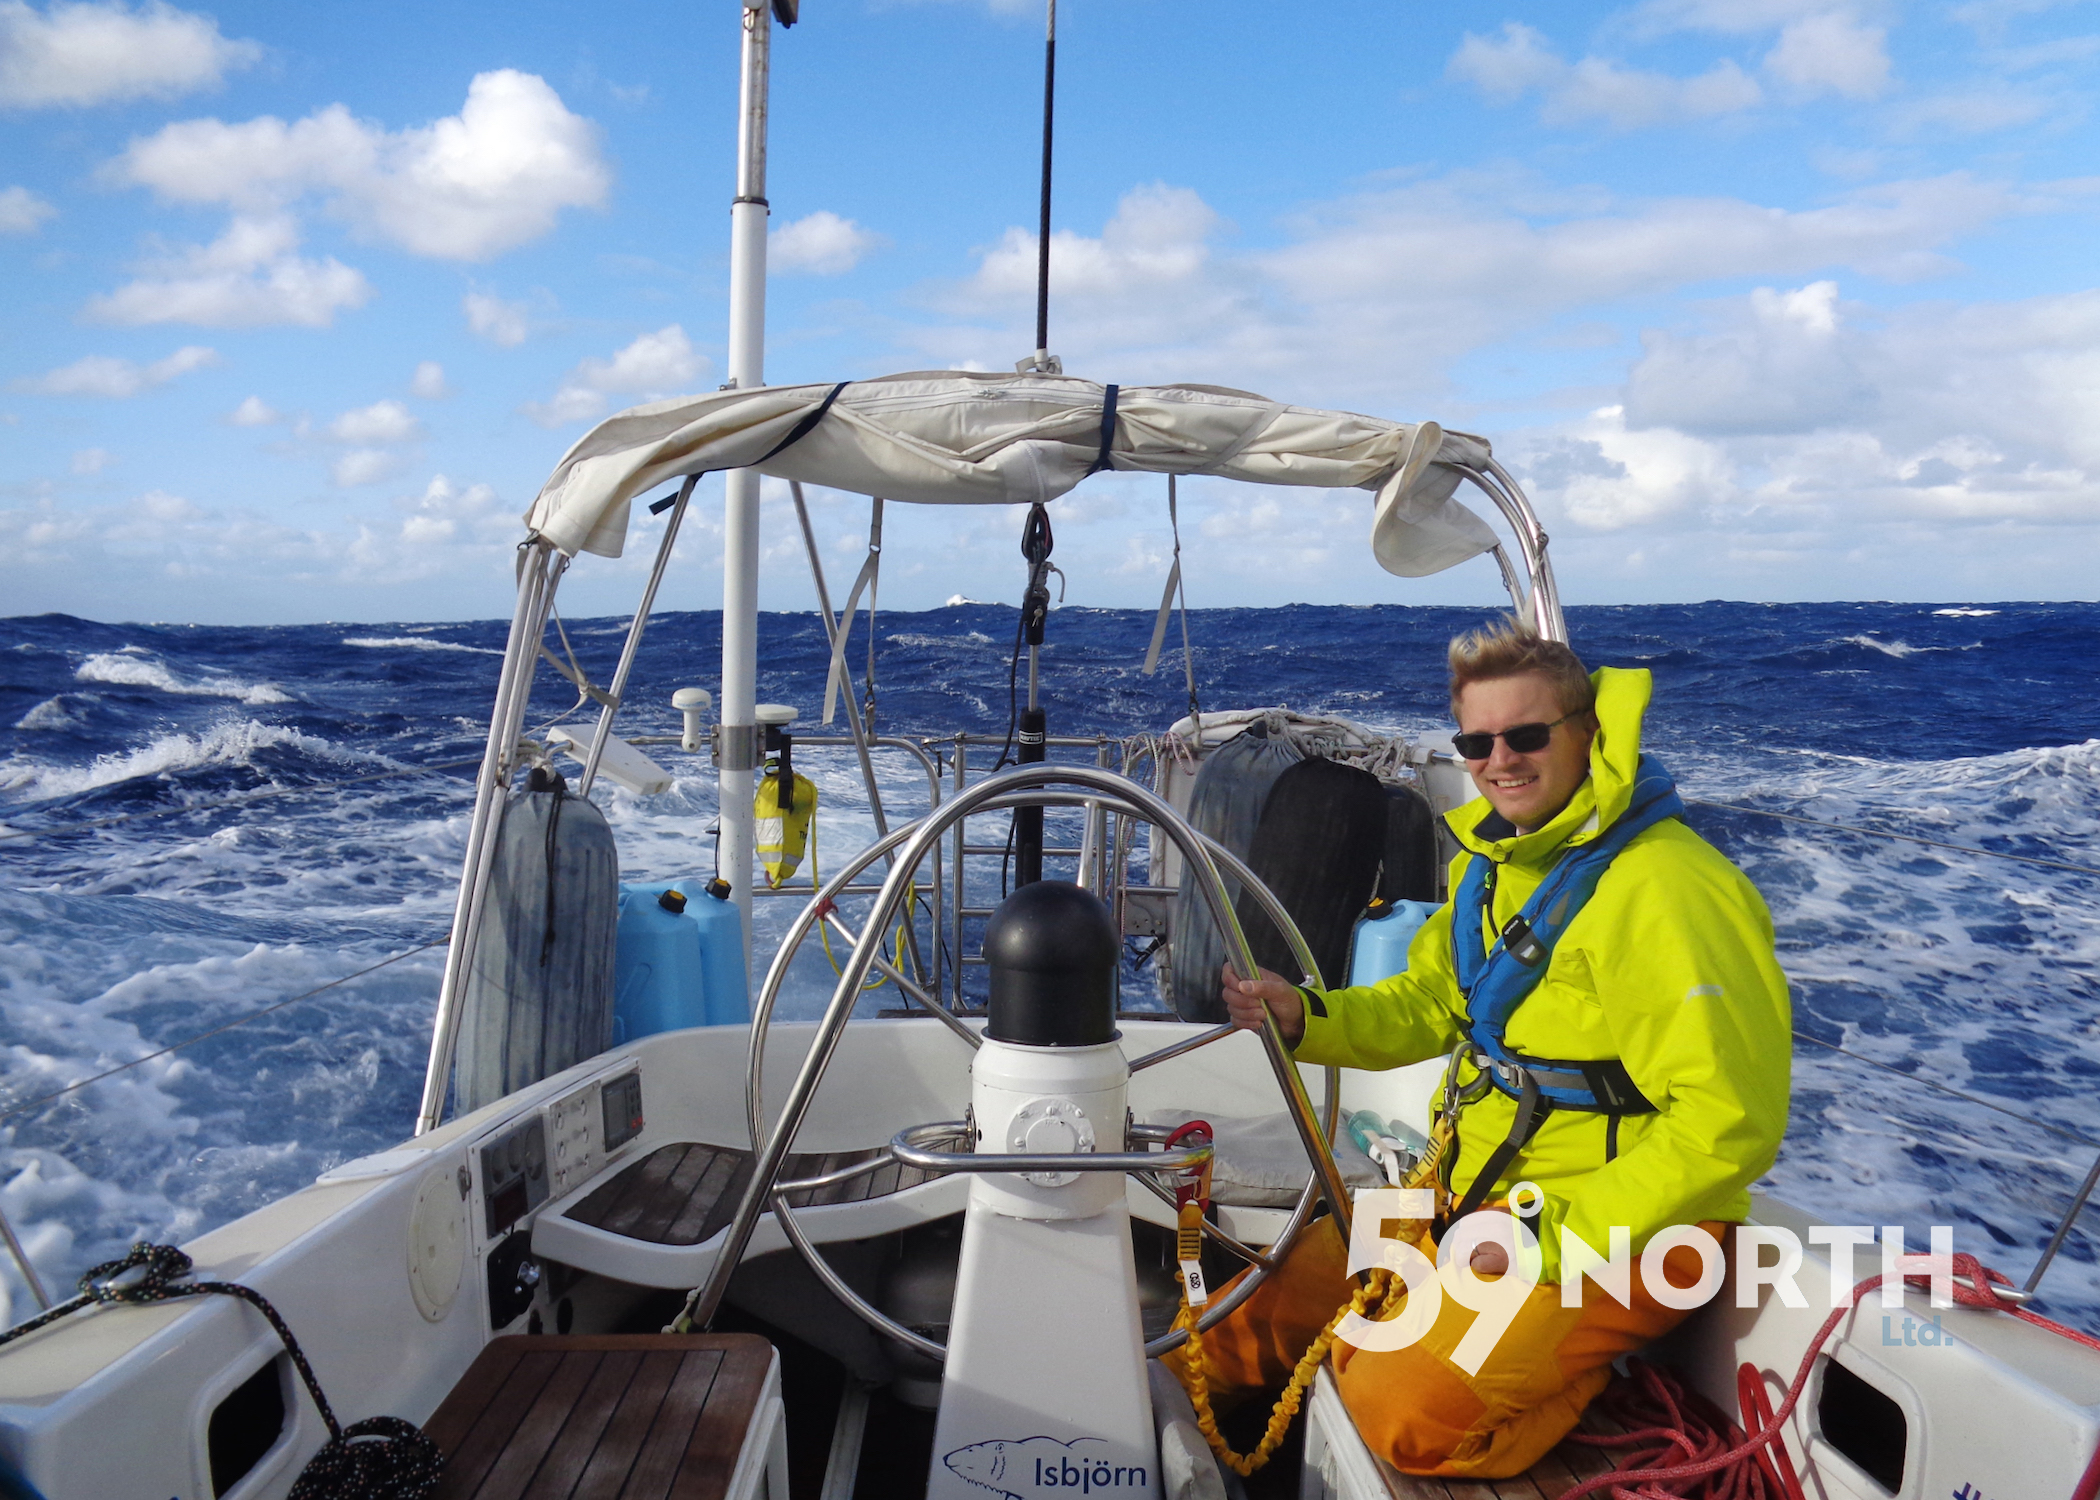 Sailing south from the Chesapeake to the BVI with C1500! Amazing winds the first couple of days! Crew Ed at the helm. Nov 2016